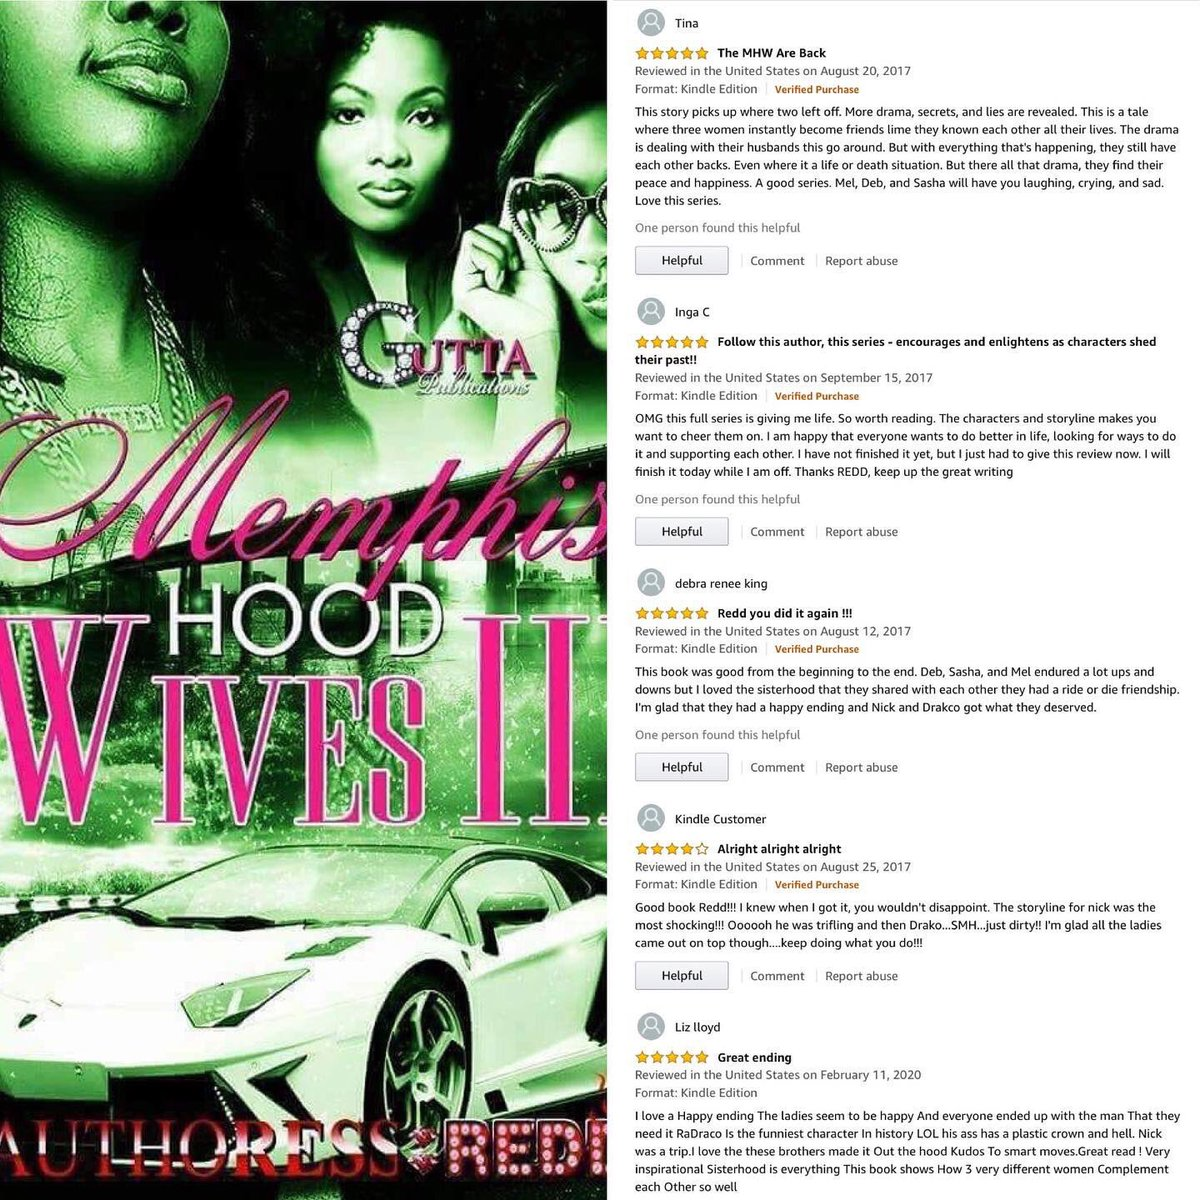 #kindlereads #Streetlit #hoodbook #audiobooks #audible #blackbookstore #dramaalert #kindlereads #Streetlit #hoodbooks #hoodbook #blackaudiobooks #audible #paperbackbooks  #bookhood #bookstoresofinstagram #audiobook #blackentrepreneurs #blackauthors #hoodbooks #sundayfundaypic.twitter.com/6MNex8HA8z